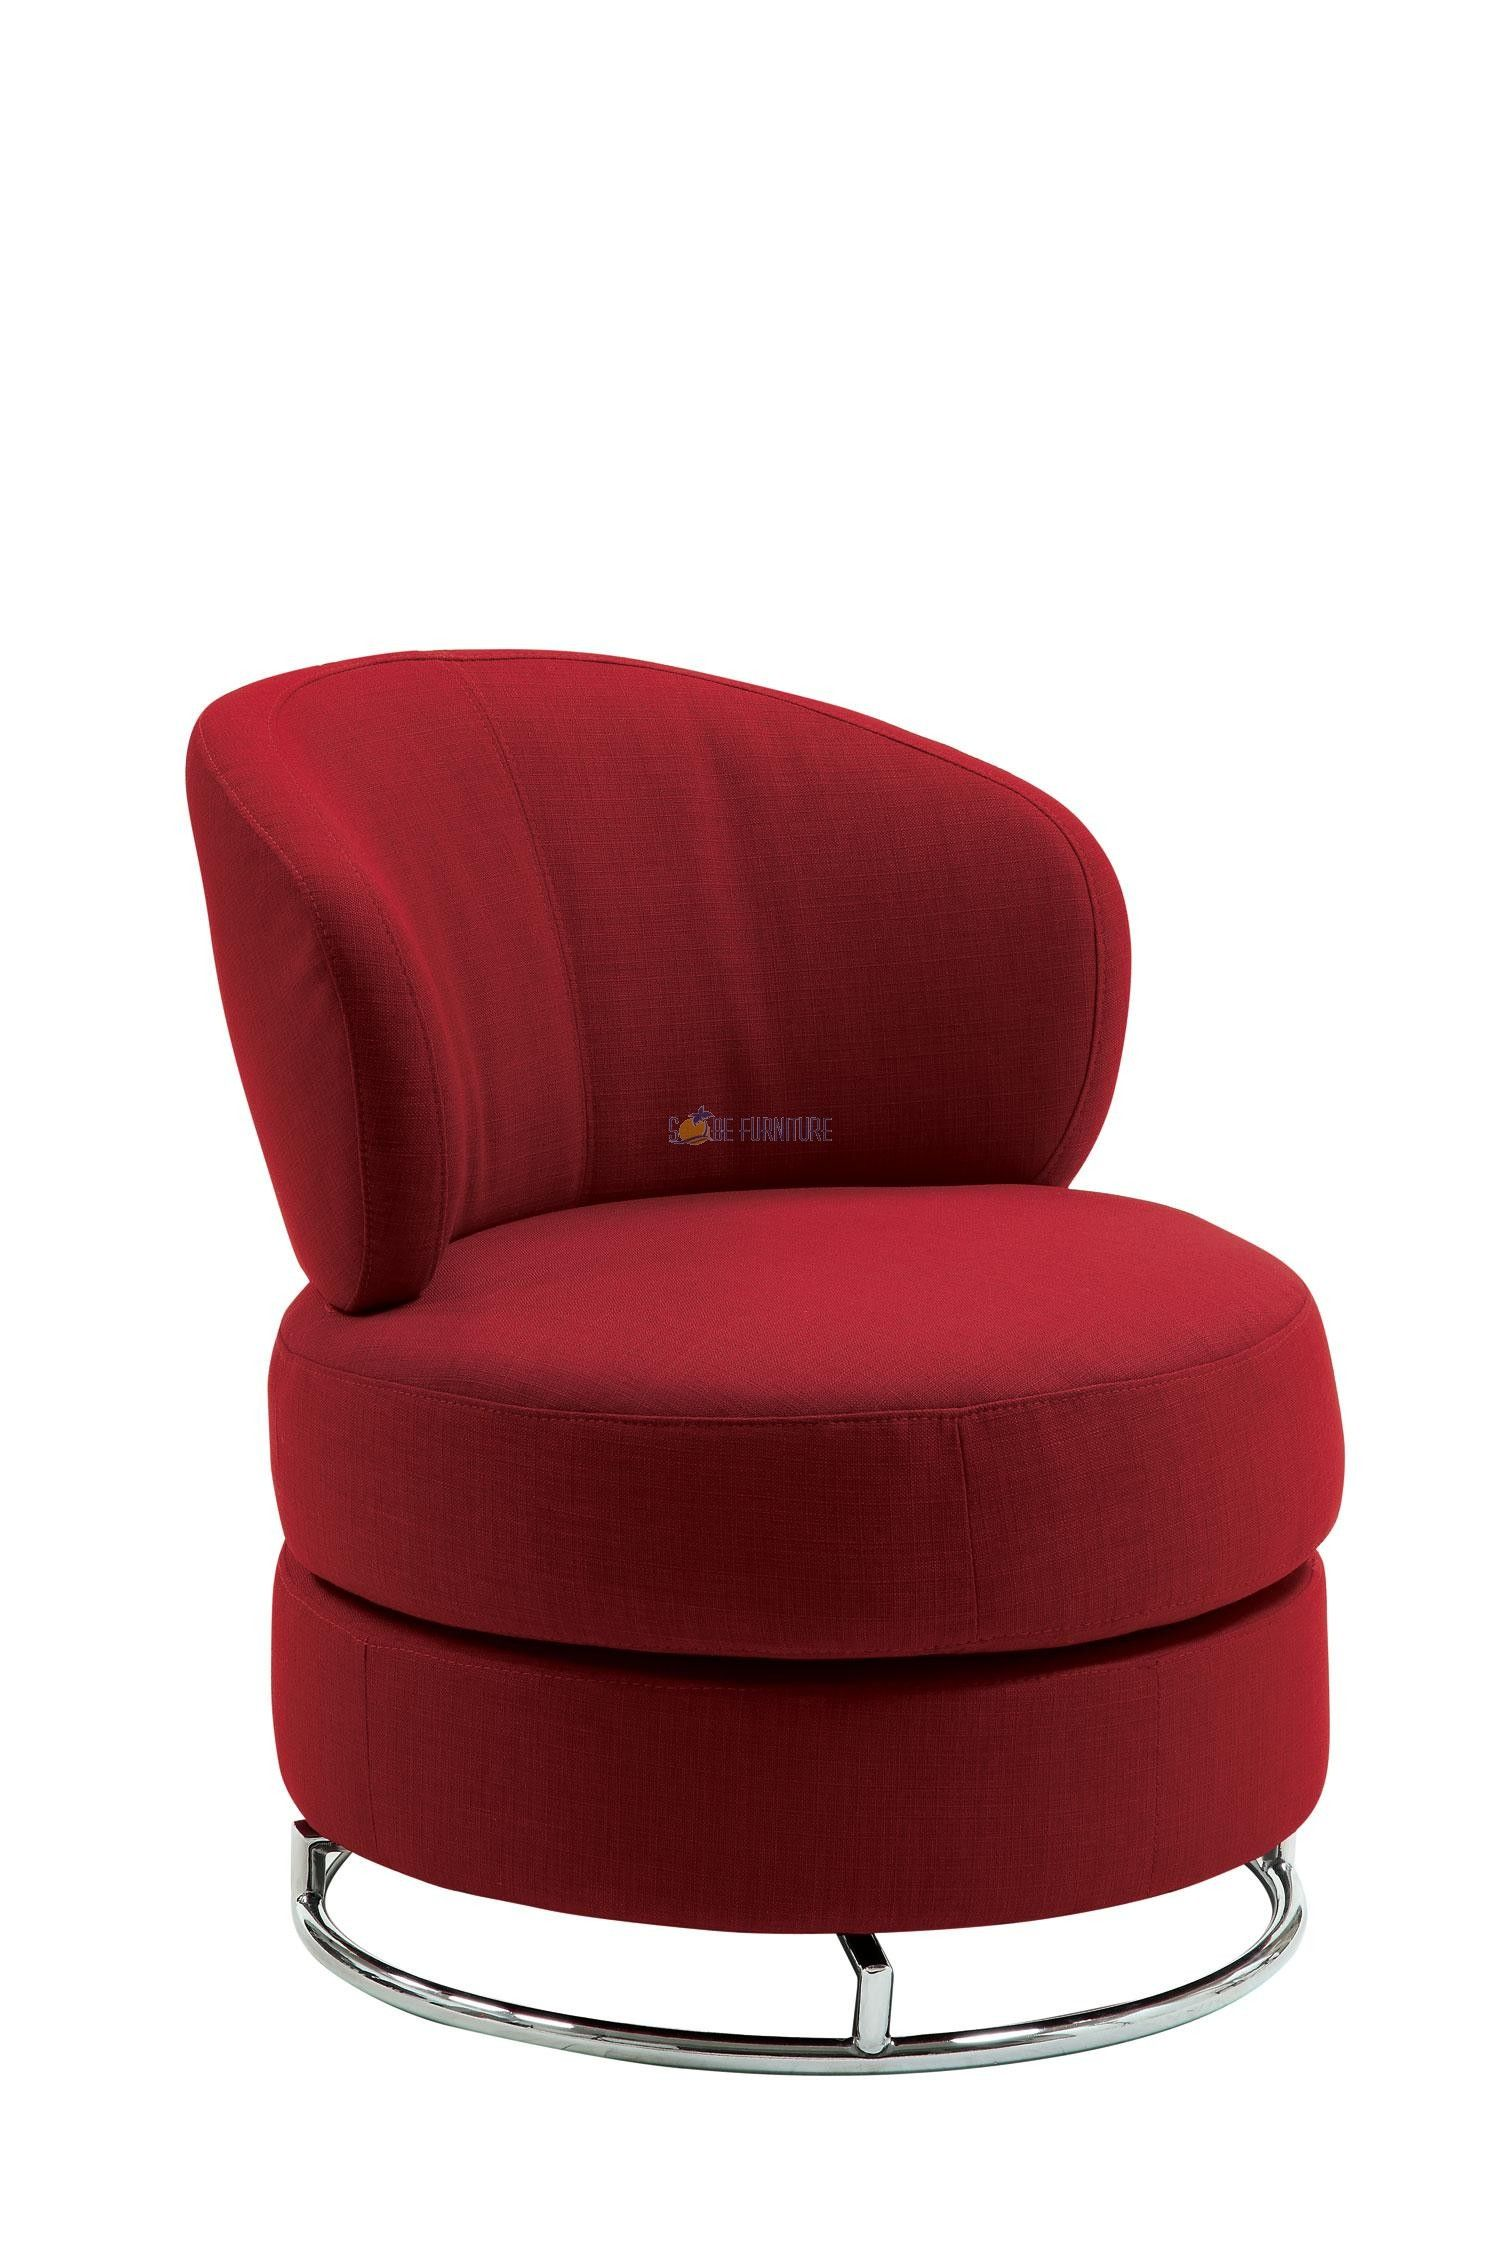 Genial Marvelous Assorted Accent Chairs Under 200 For Your Home Decoration :  Luxurious Round Accent Chairs Under